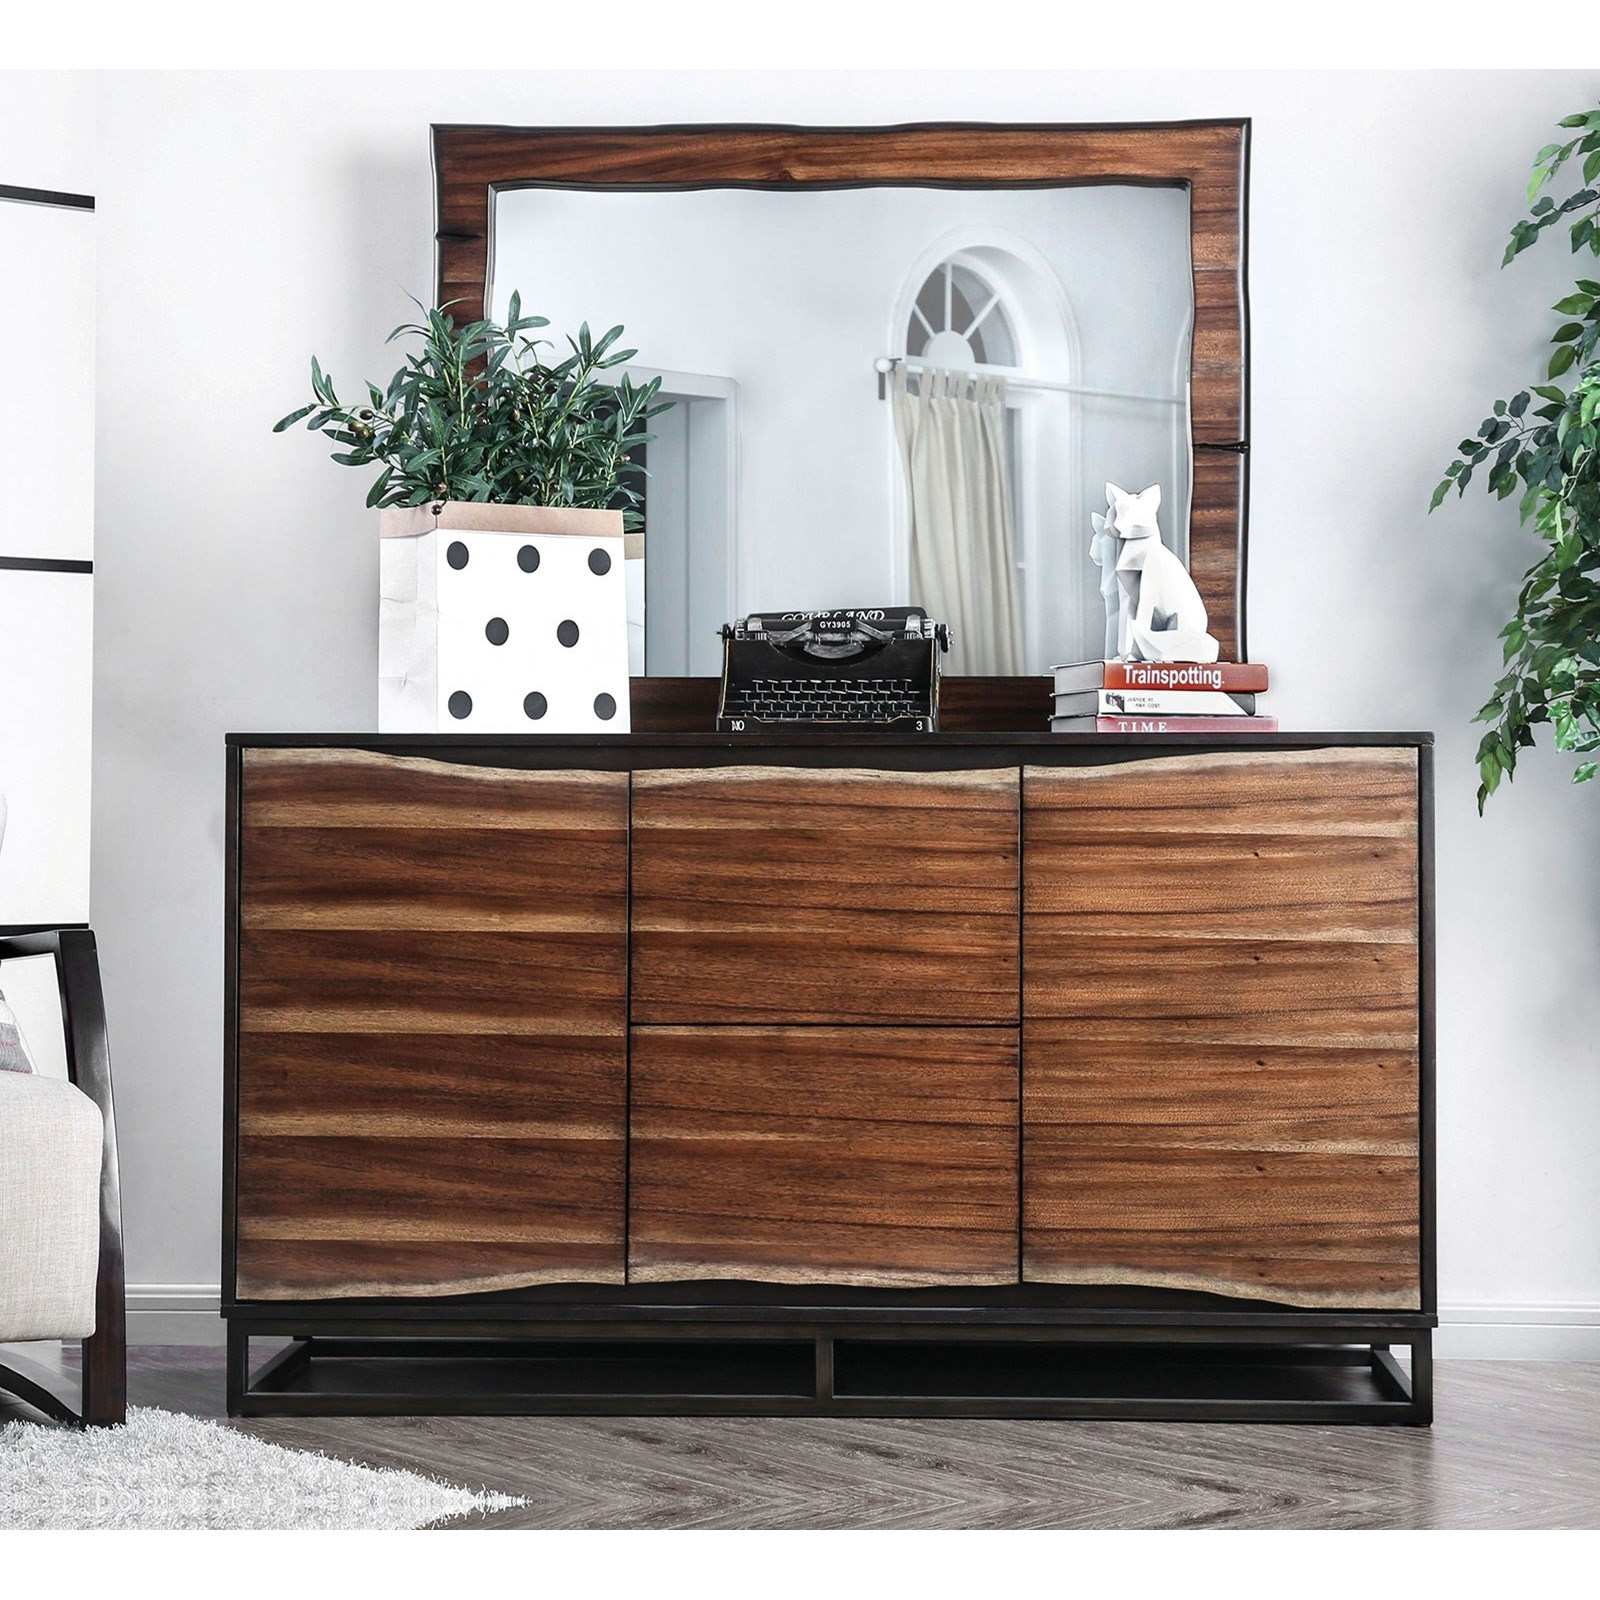 Fulton Dresser and Mirror Combination by Furniture of America at Corner Furniture